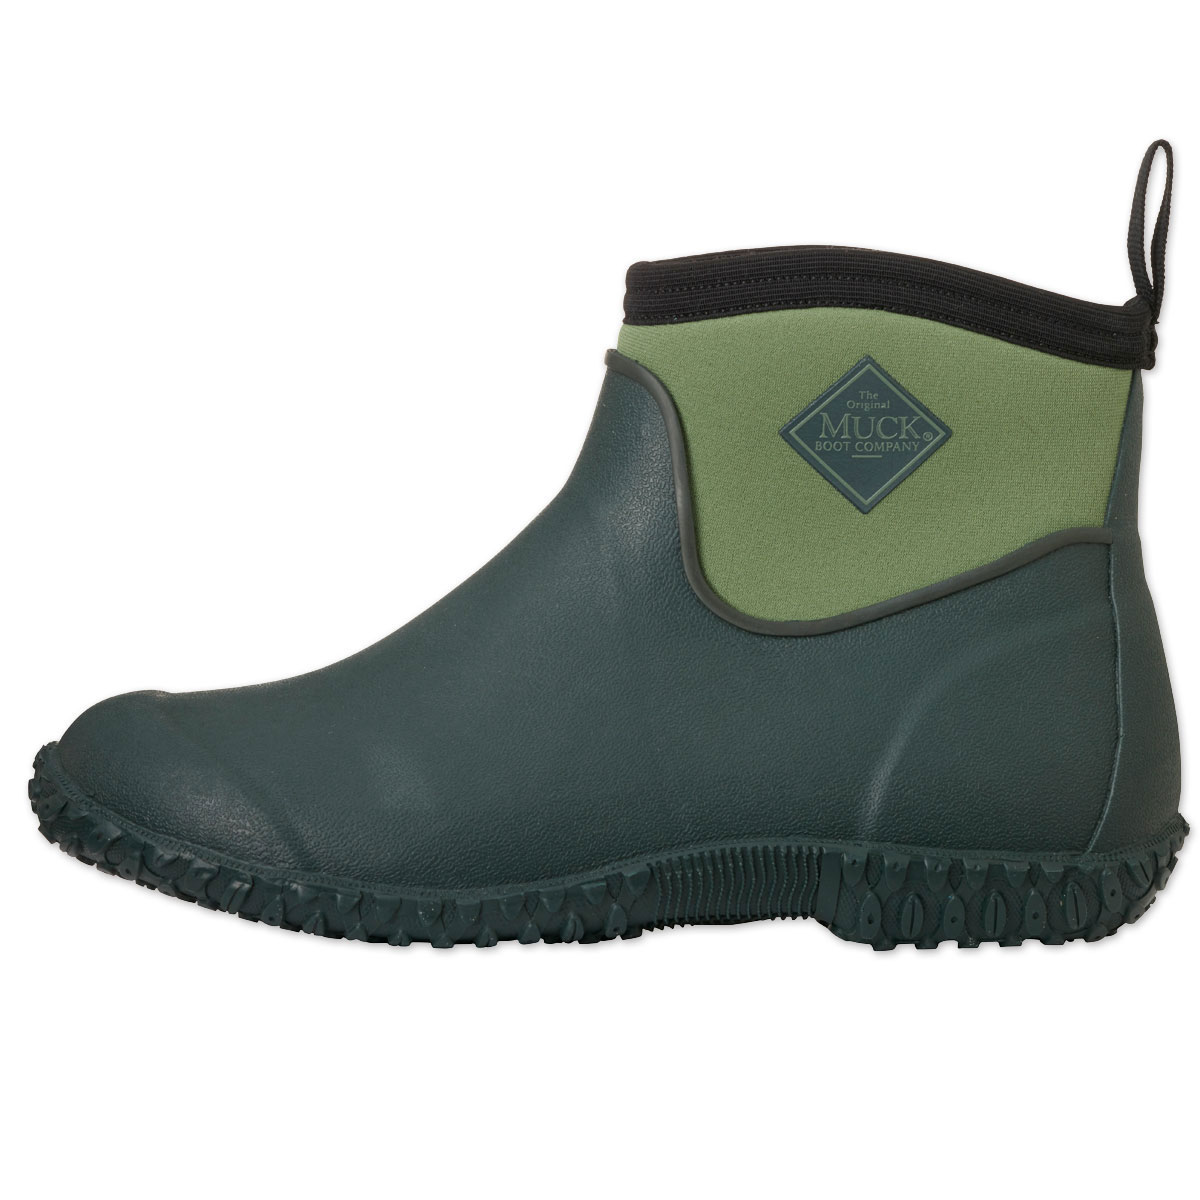 The Original Muck Boot Company™ Boot Muckster II Ankle Boot